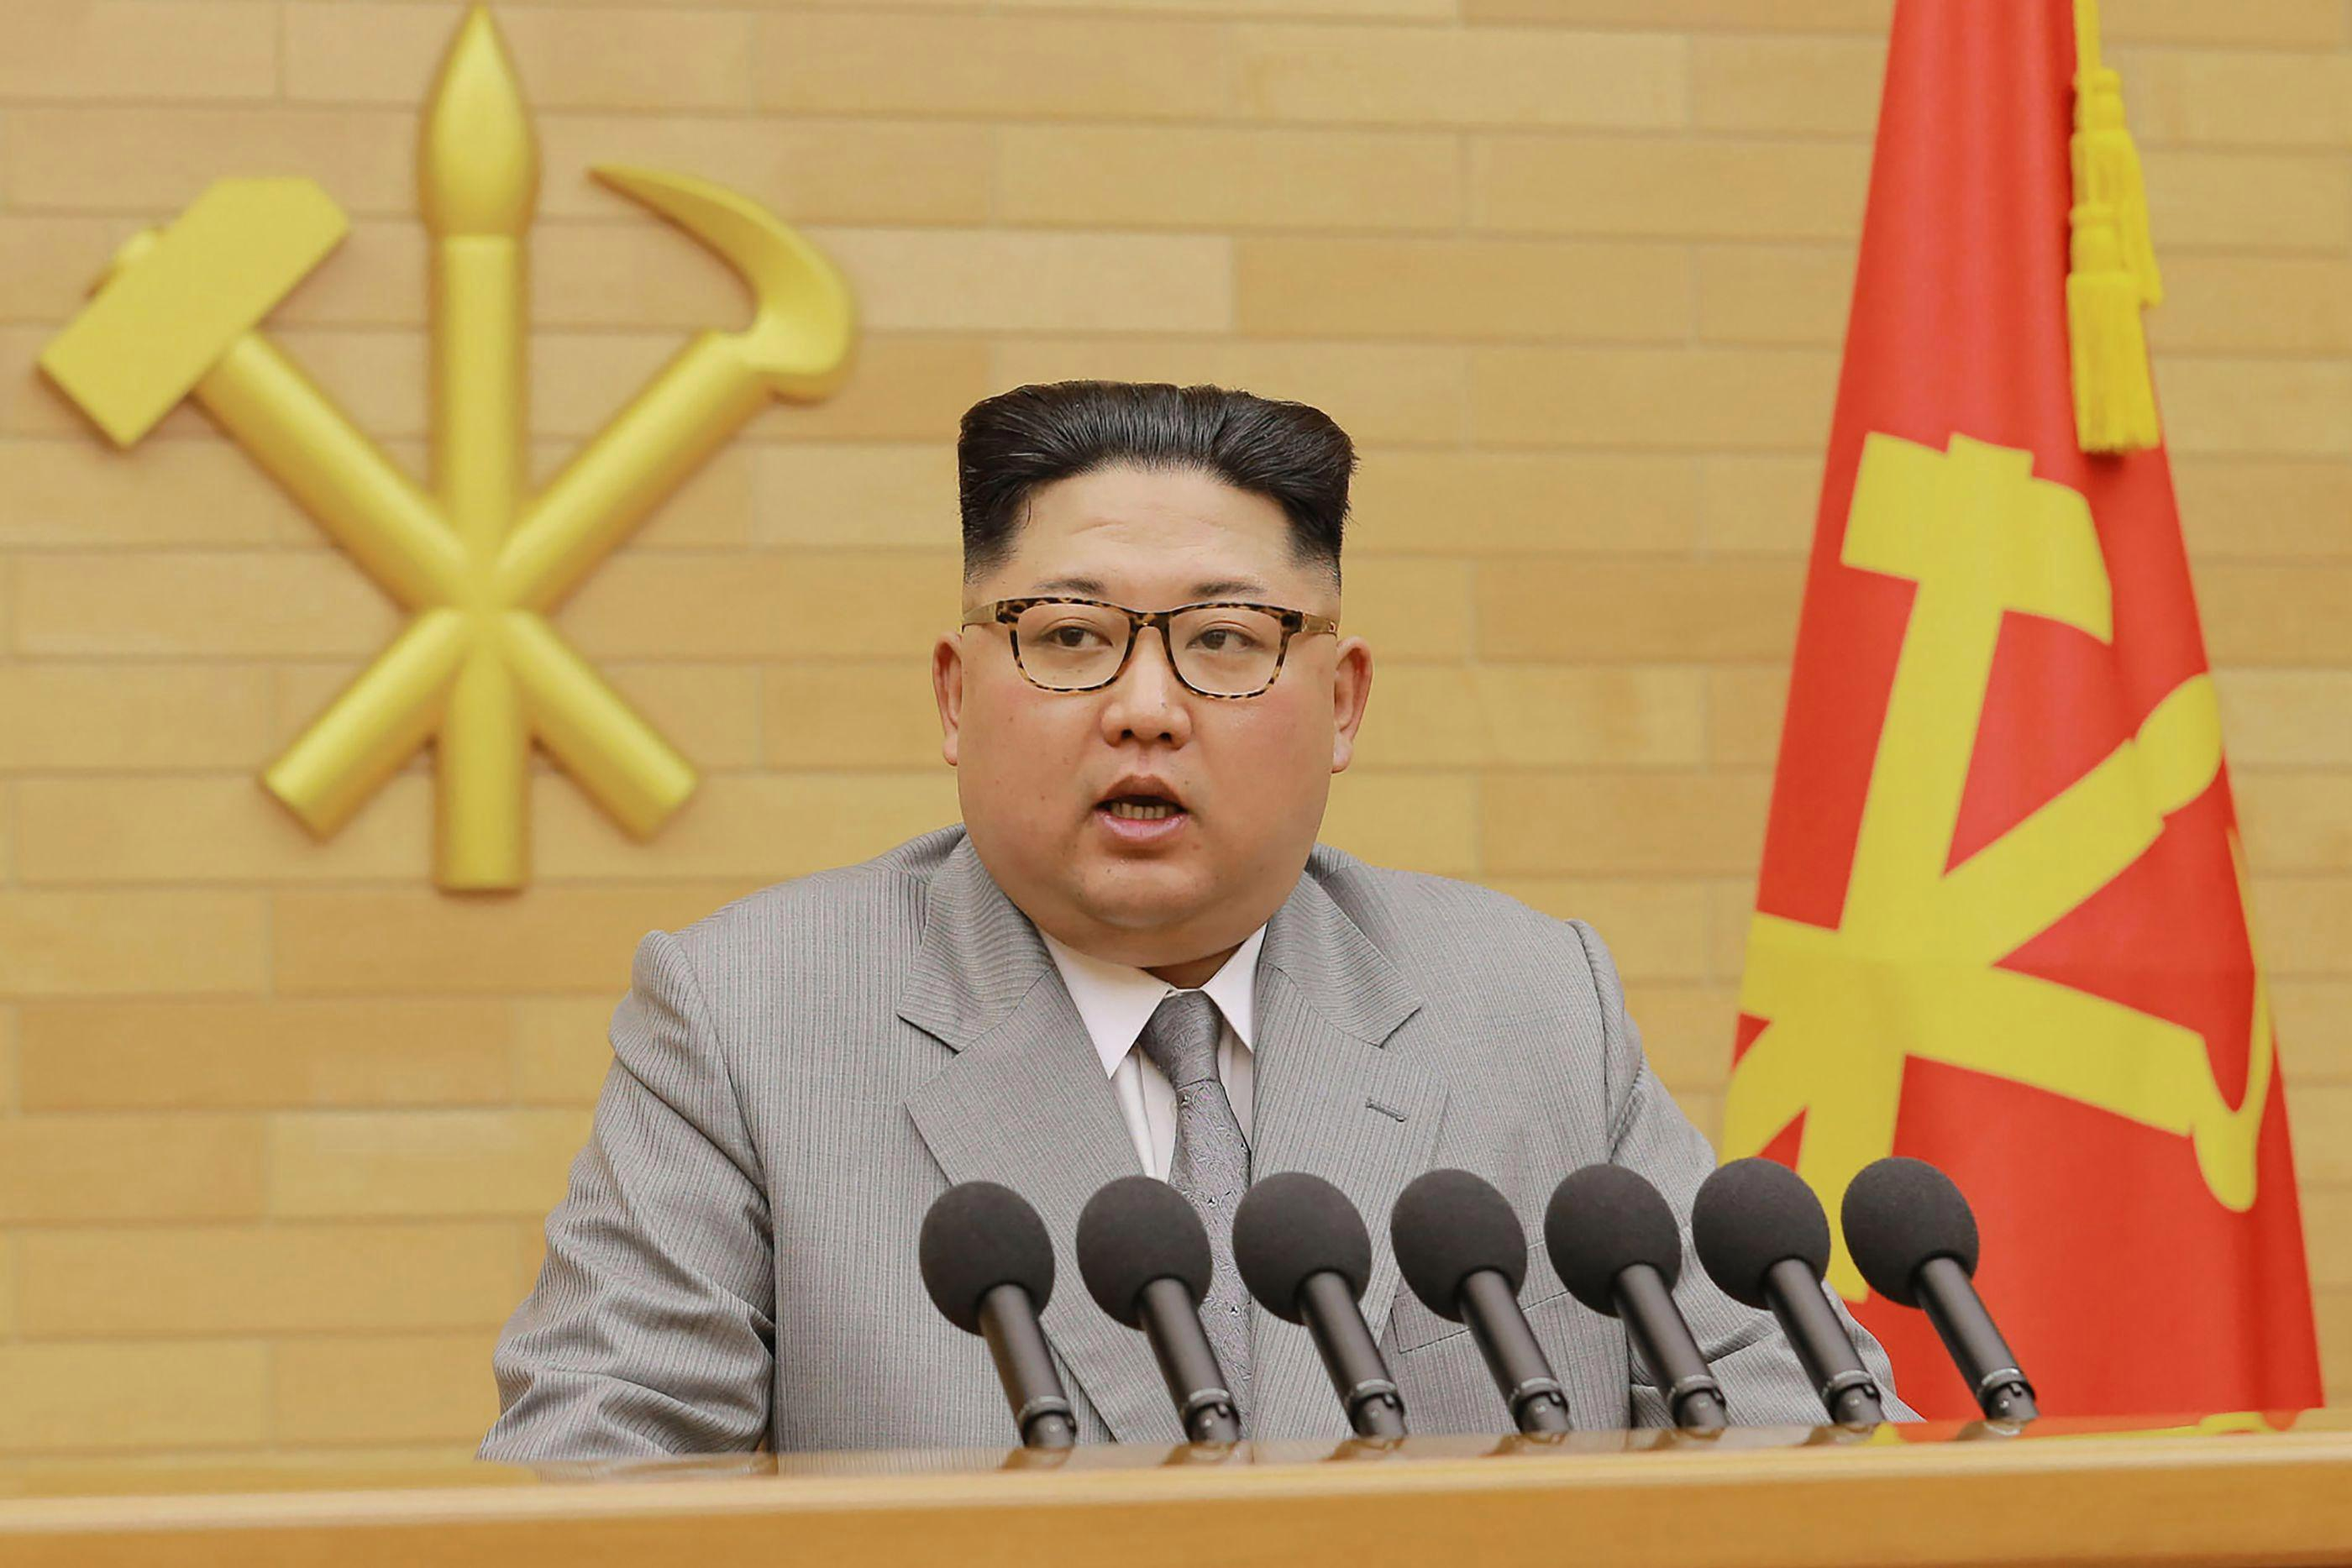 North Korea threatens to 'smash' challenges to plans to re-unify country